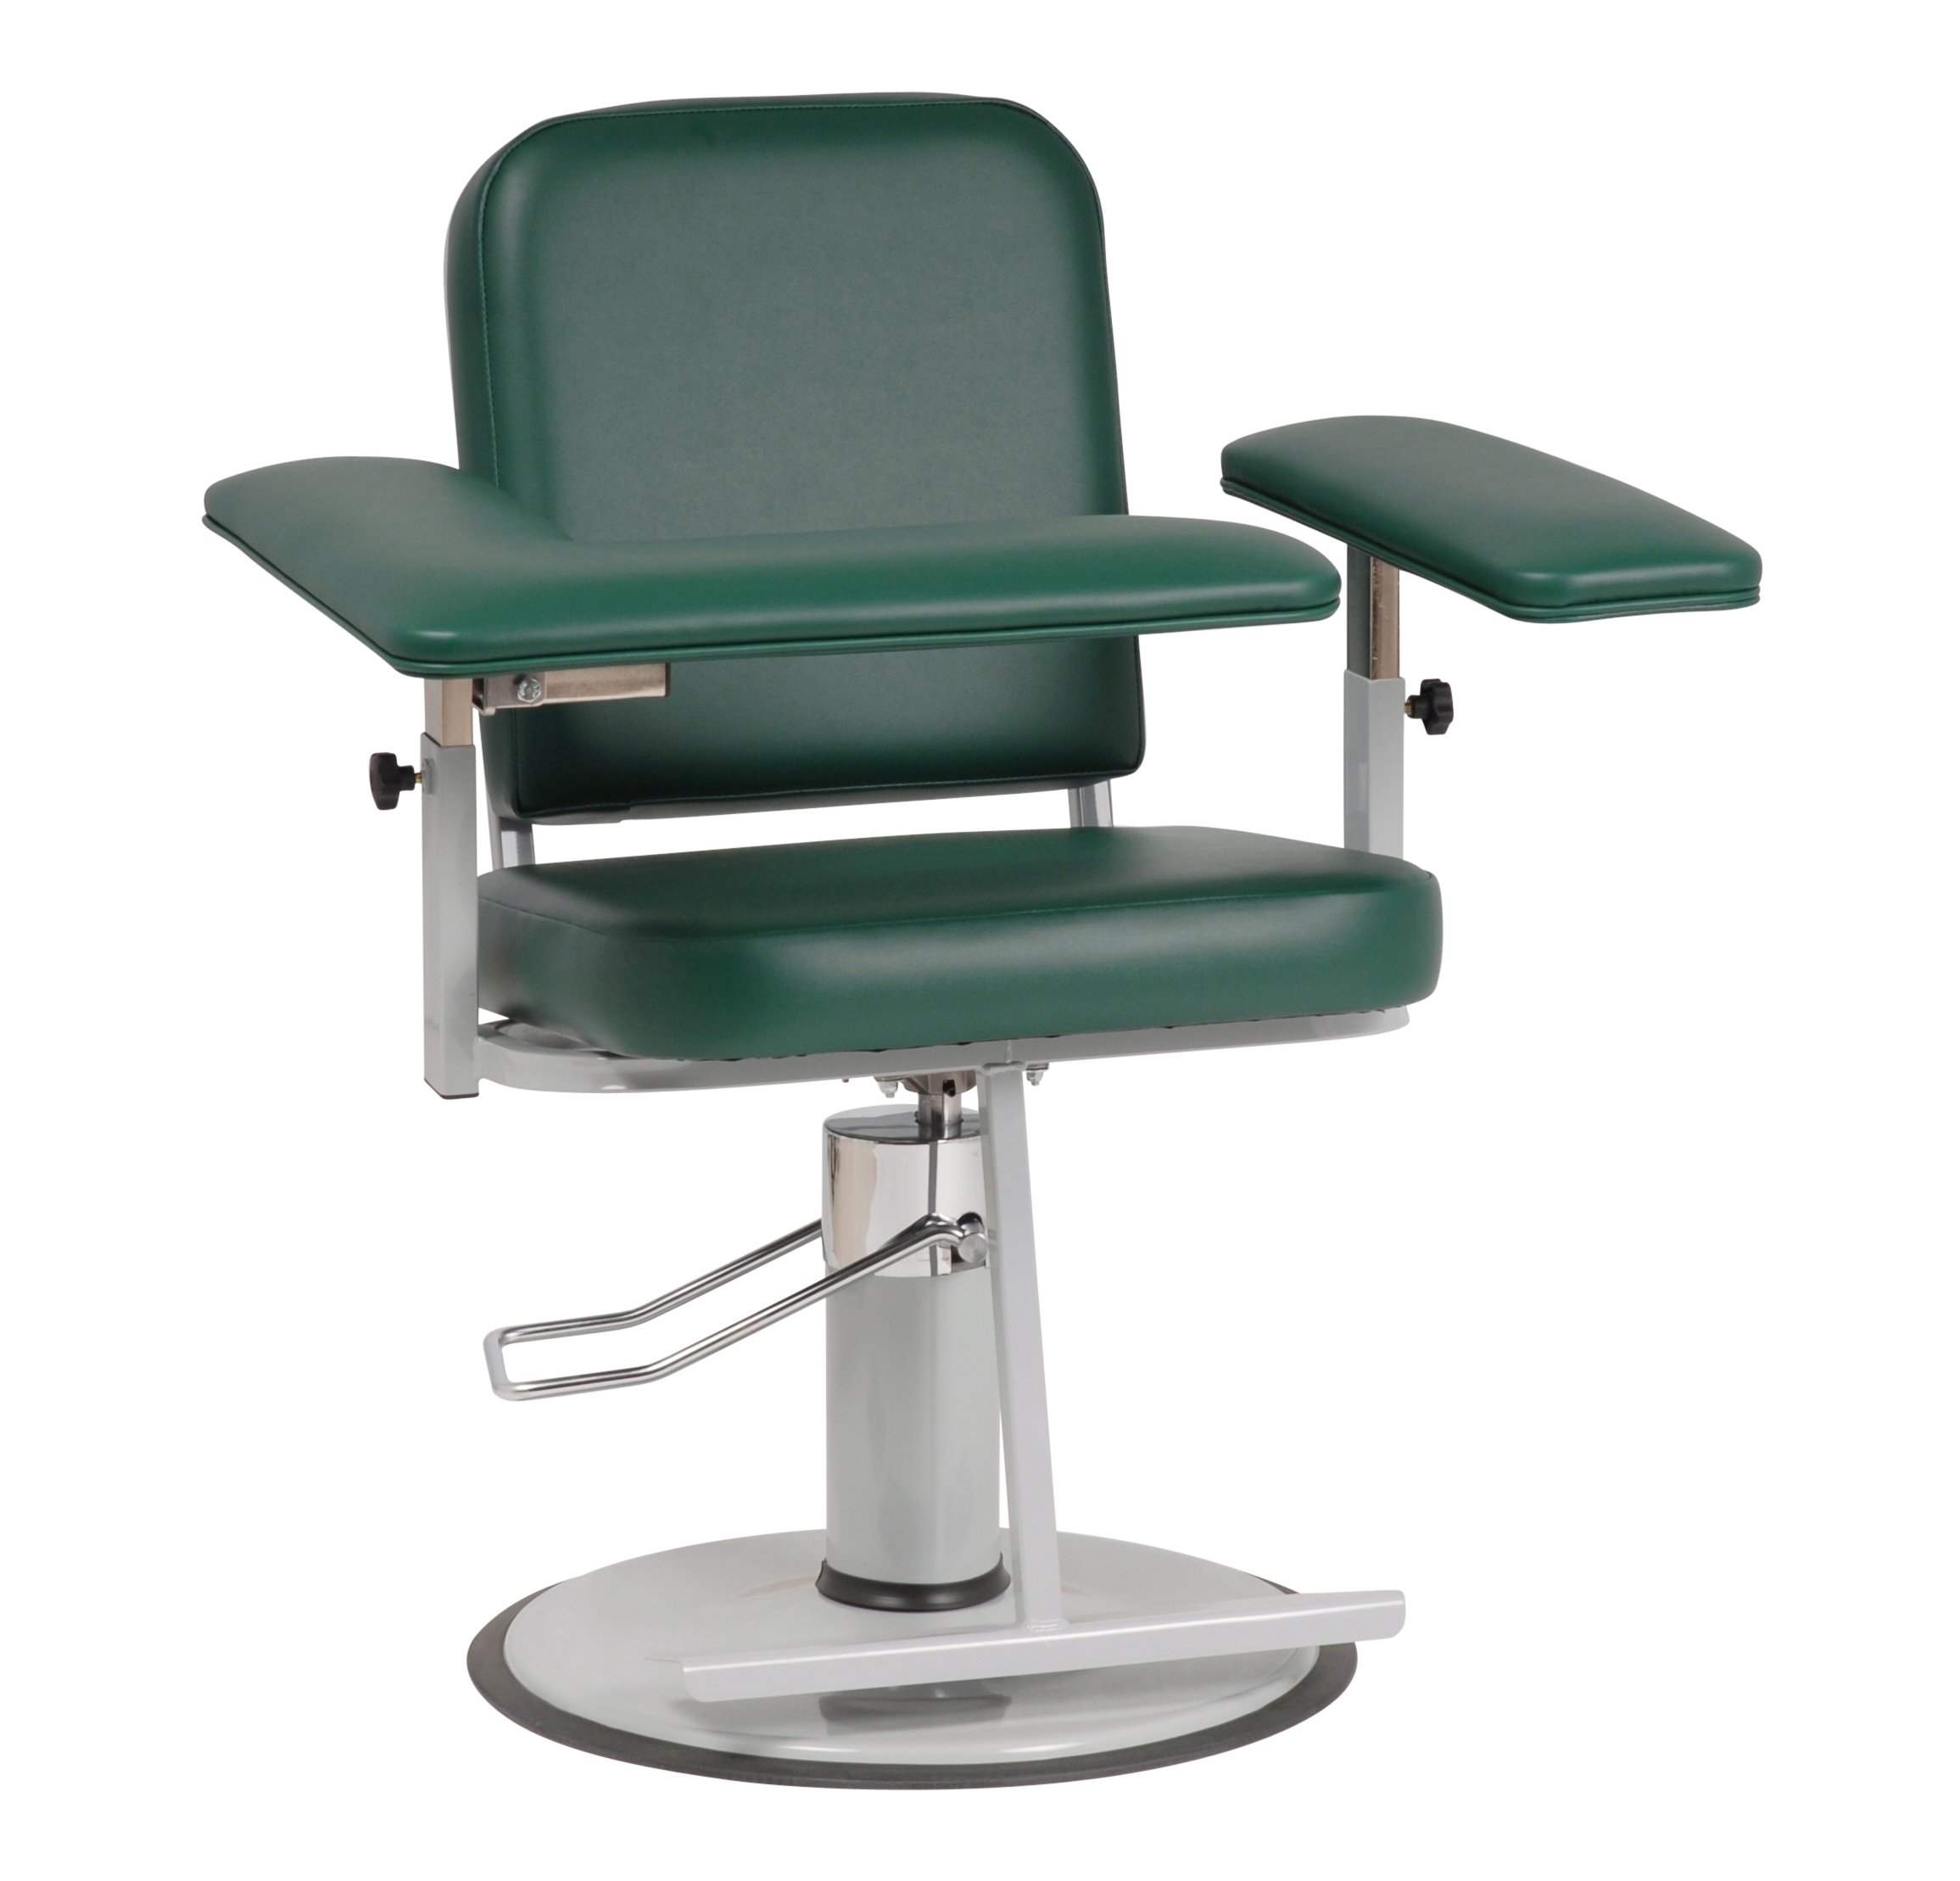 Adjustable Height Blood Draw Chairs